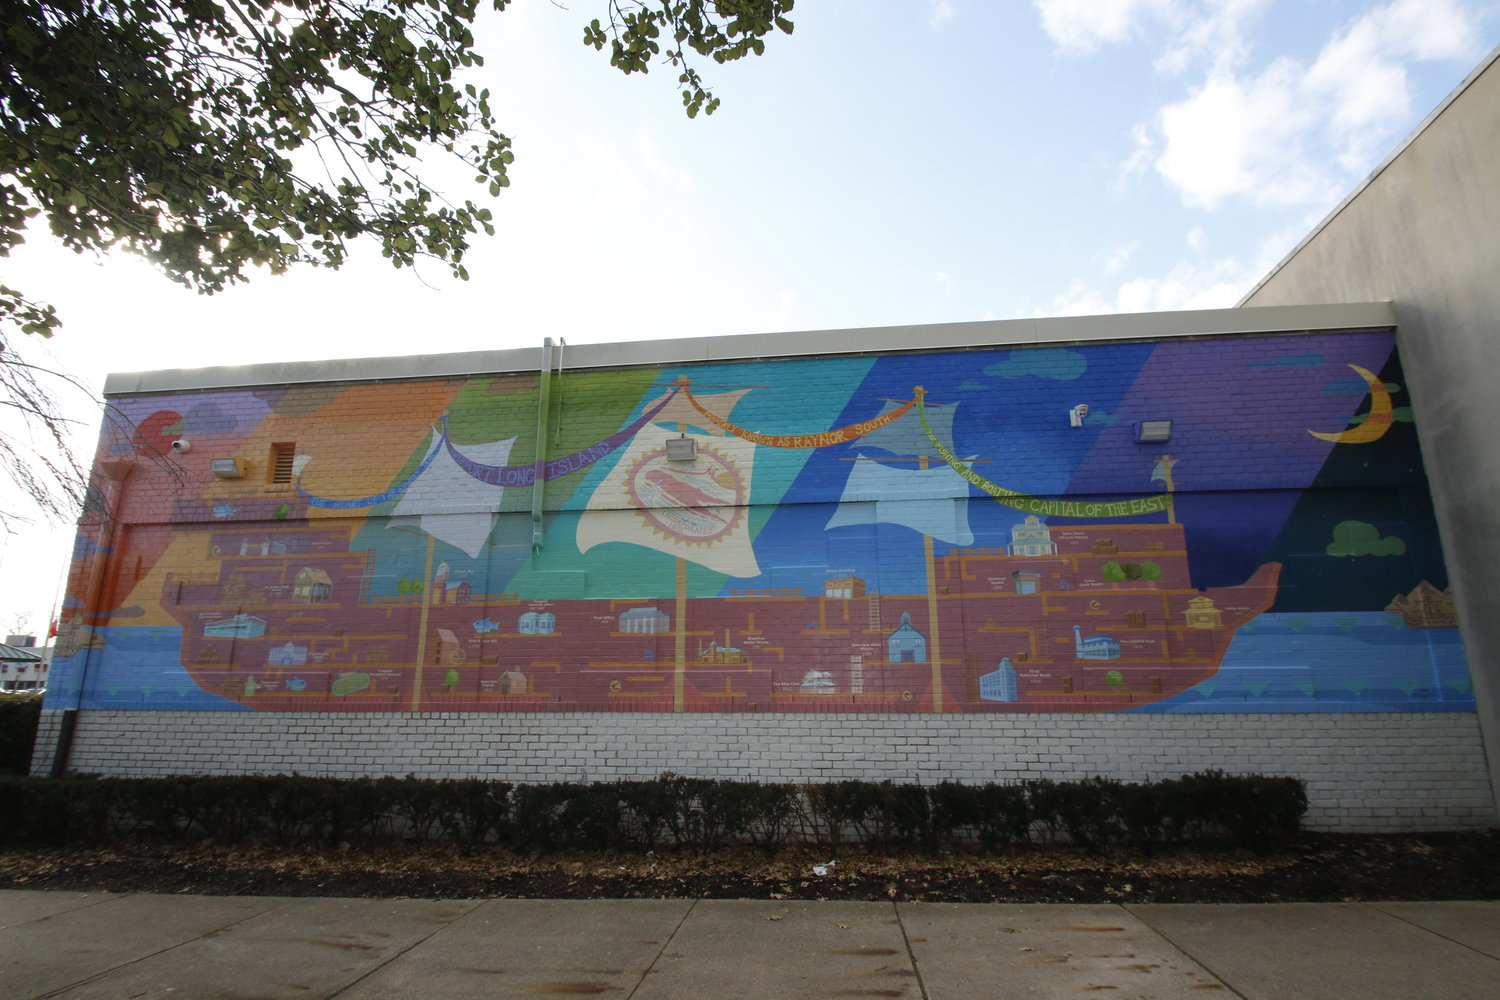 The mural includes over 20 historical landmarks or symbols that represent the Village.